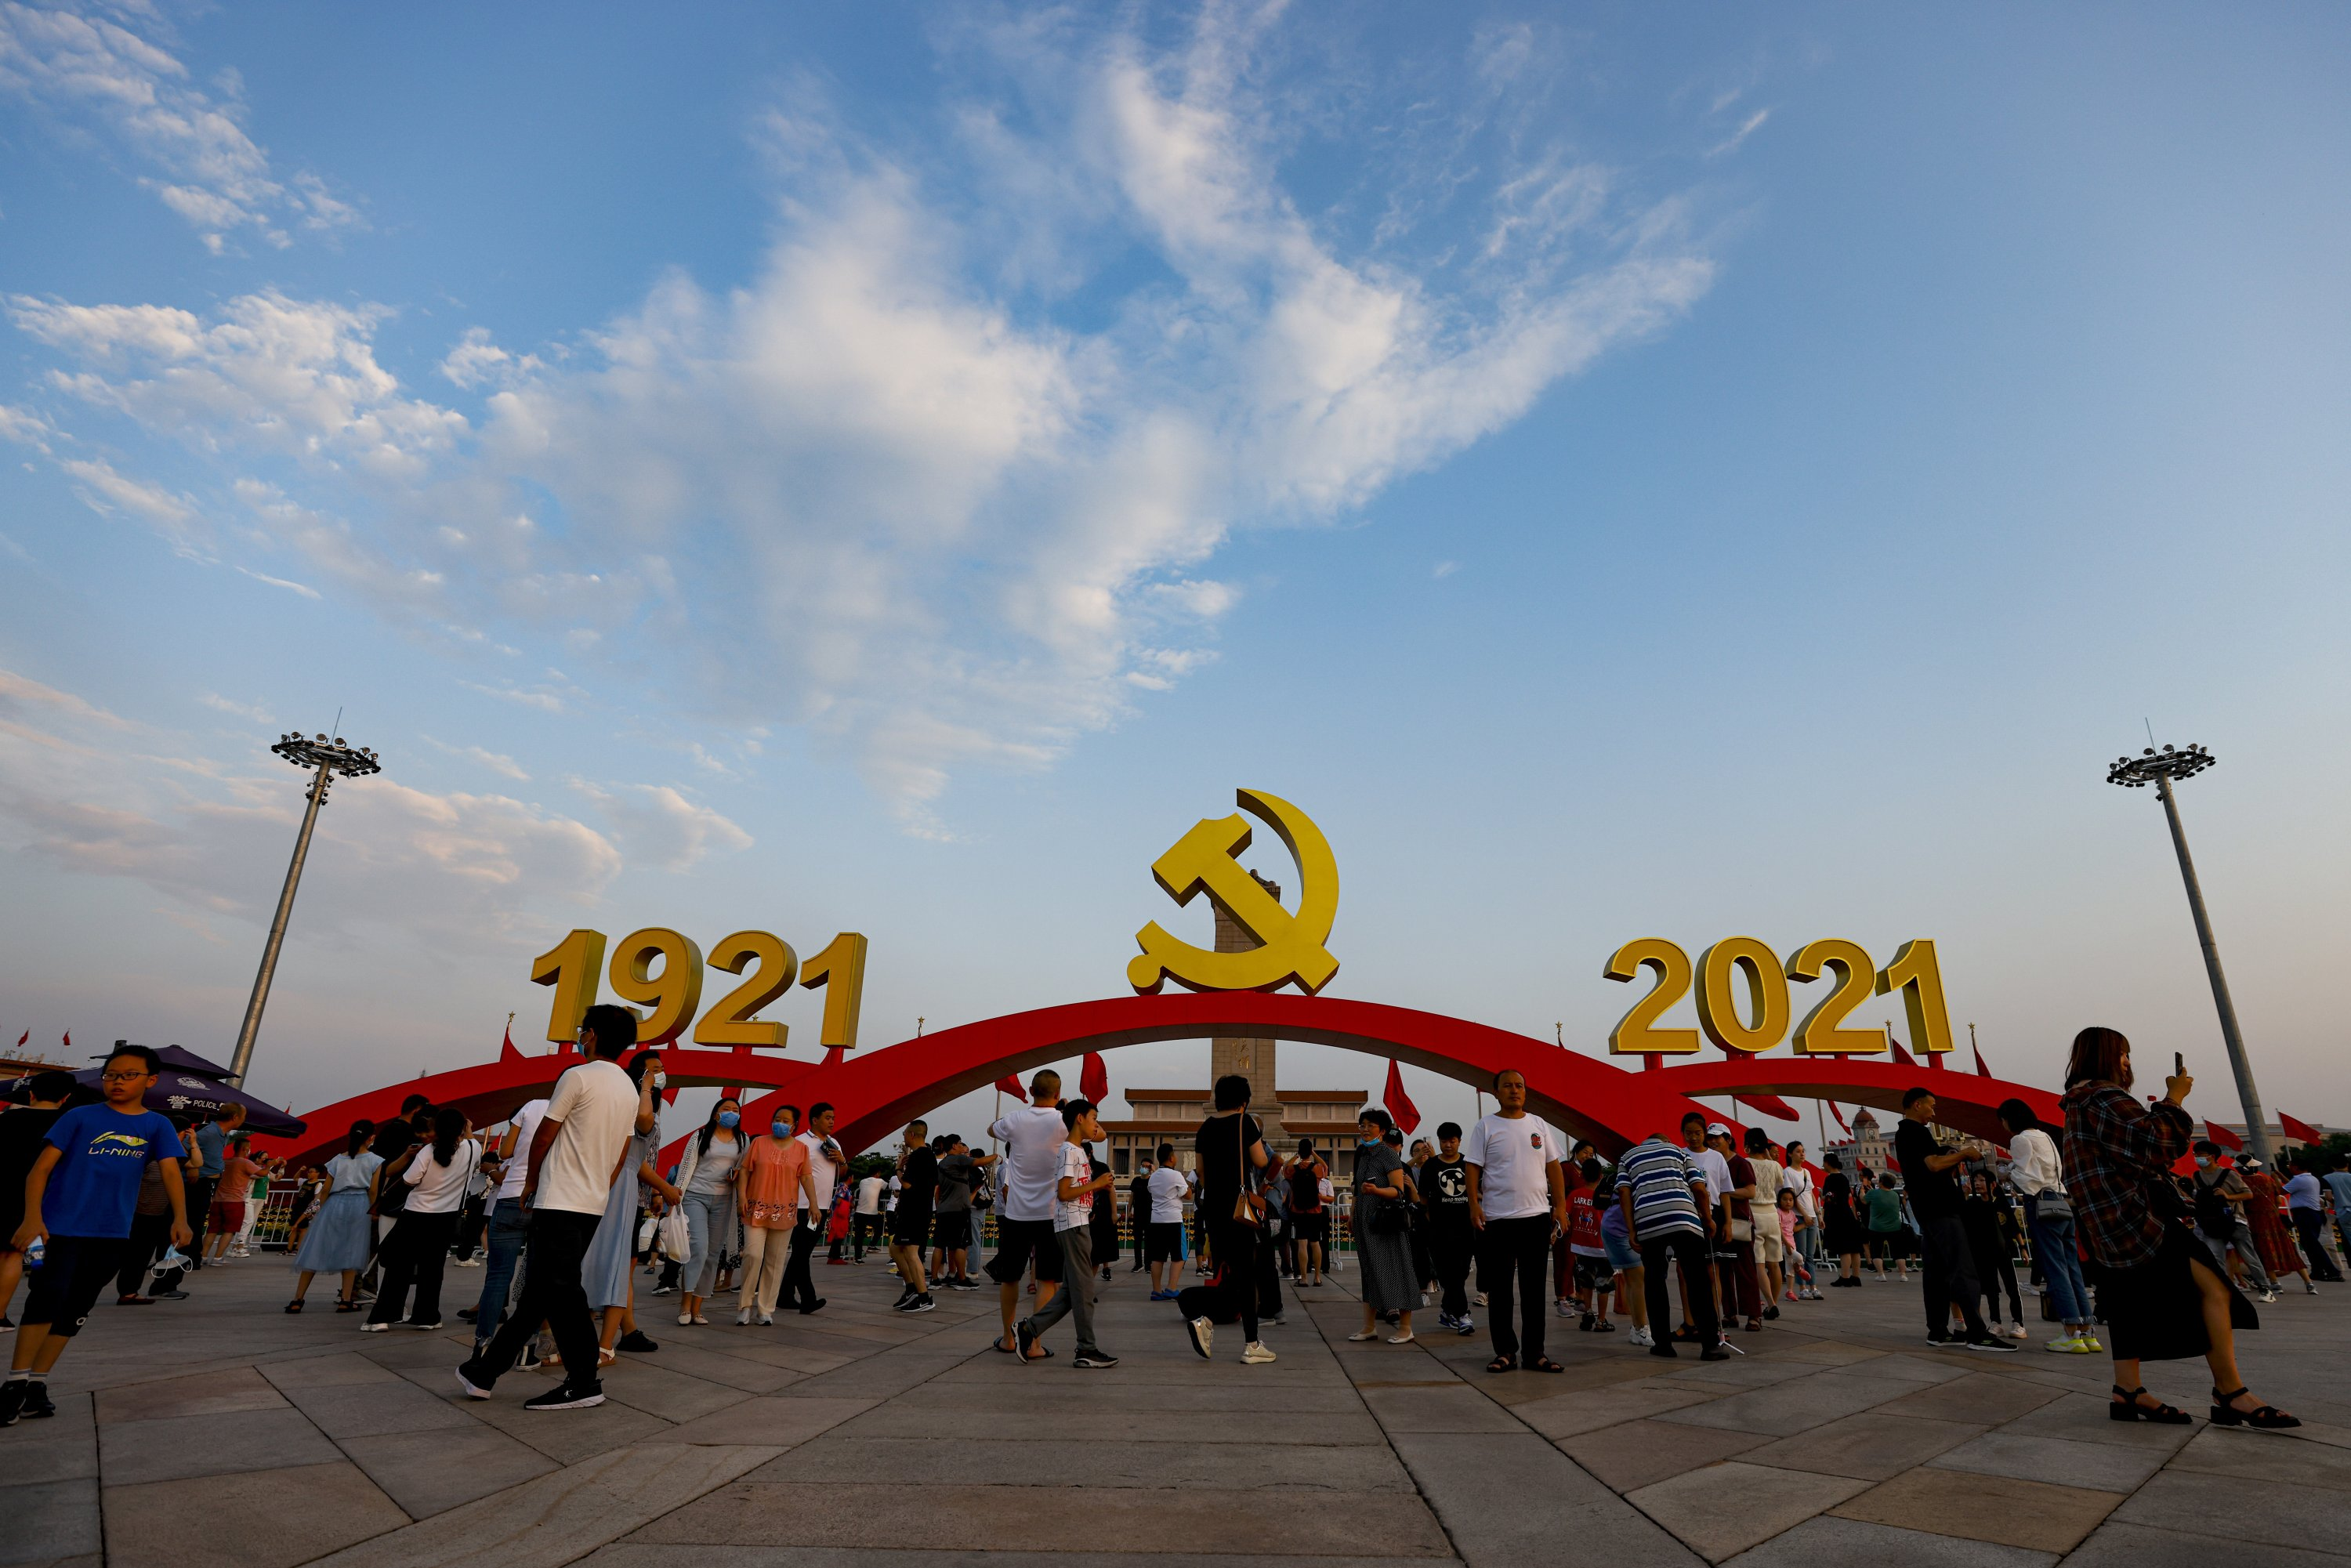 Tourists pose for photos in front of an art installation marking the 100th anniversary of the founding of the Communist Party of China (CPC) at Tiananmen Square in Beijing, China, July 9, 2021. (Getty Images)